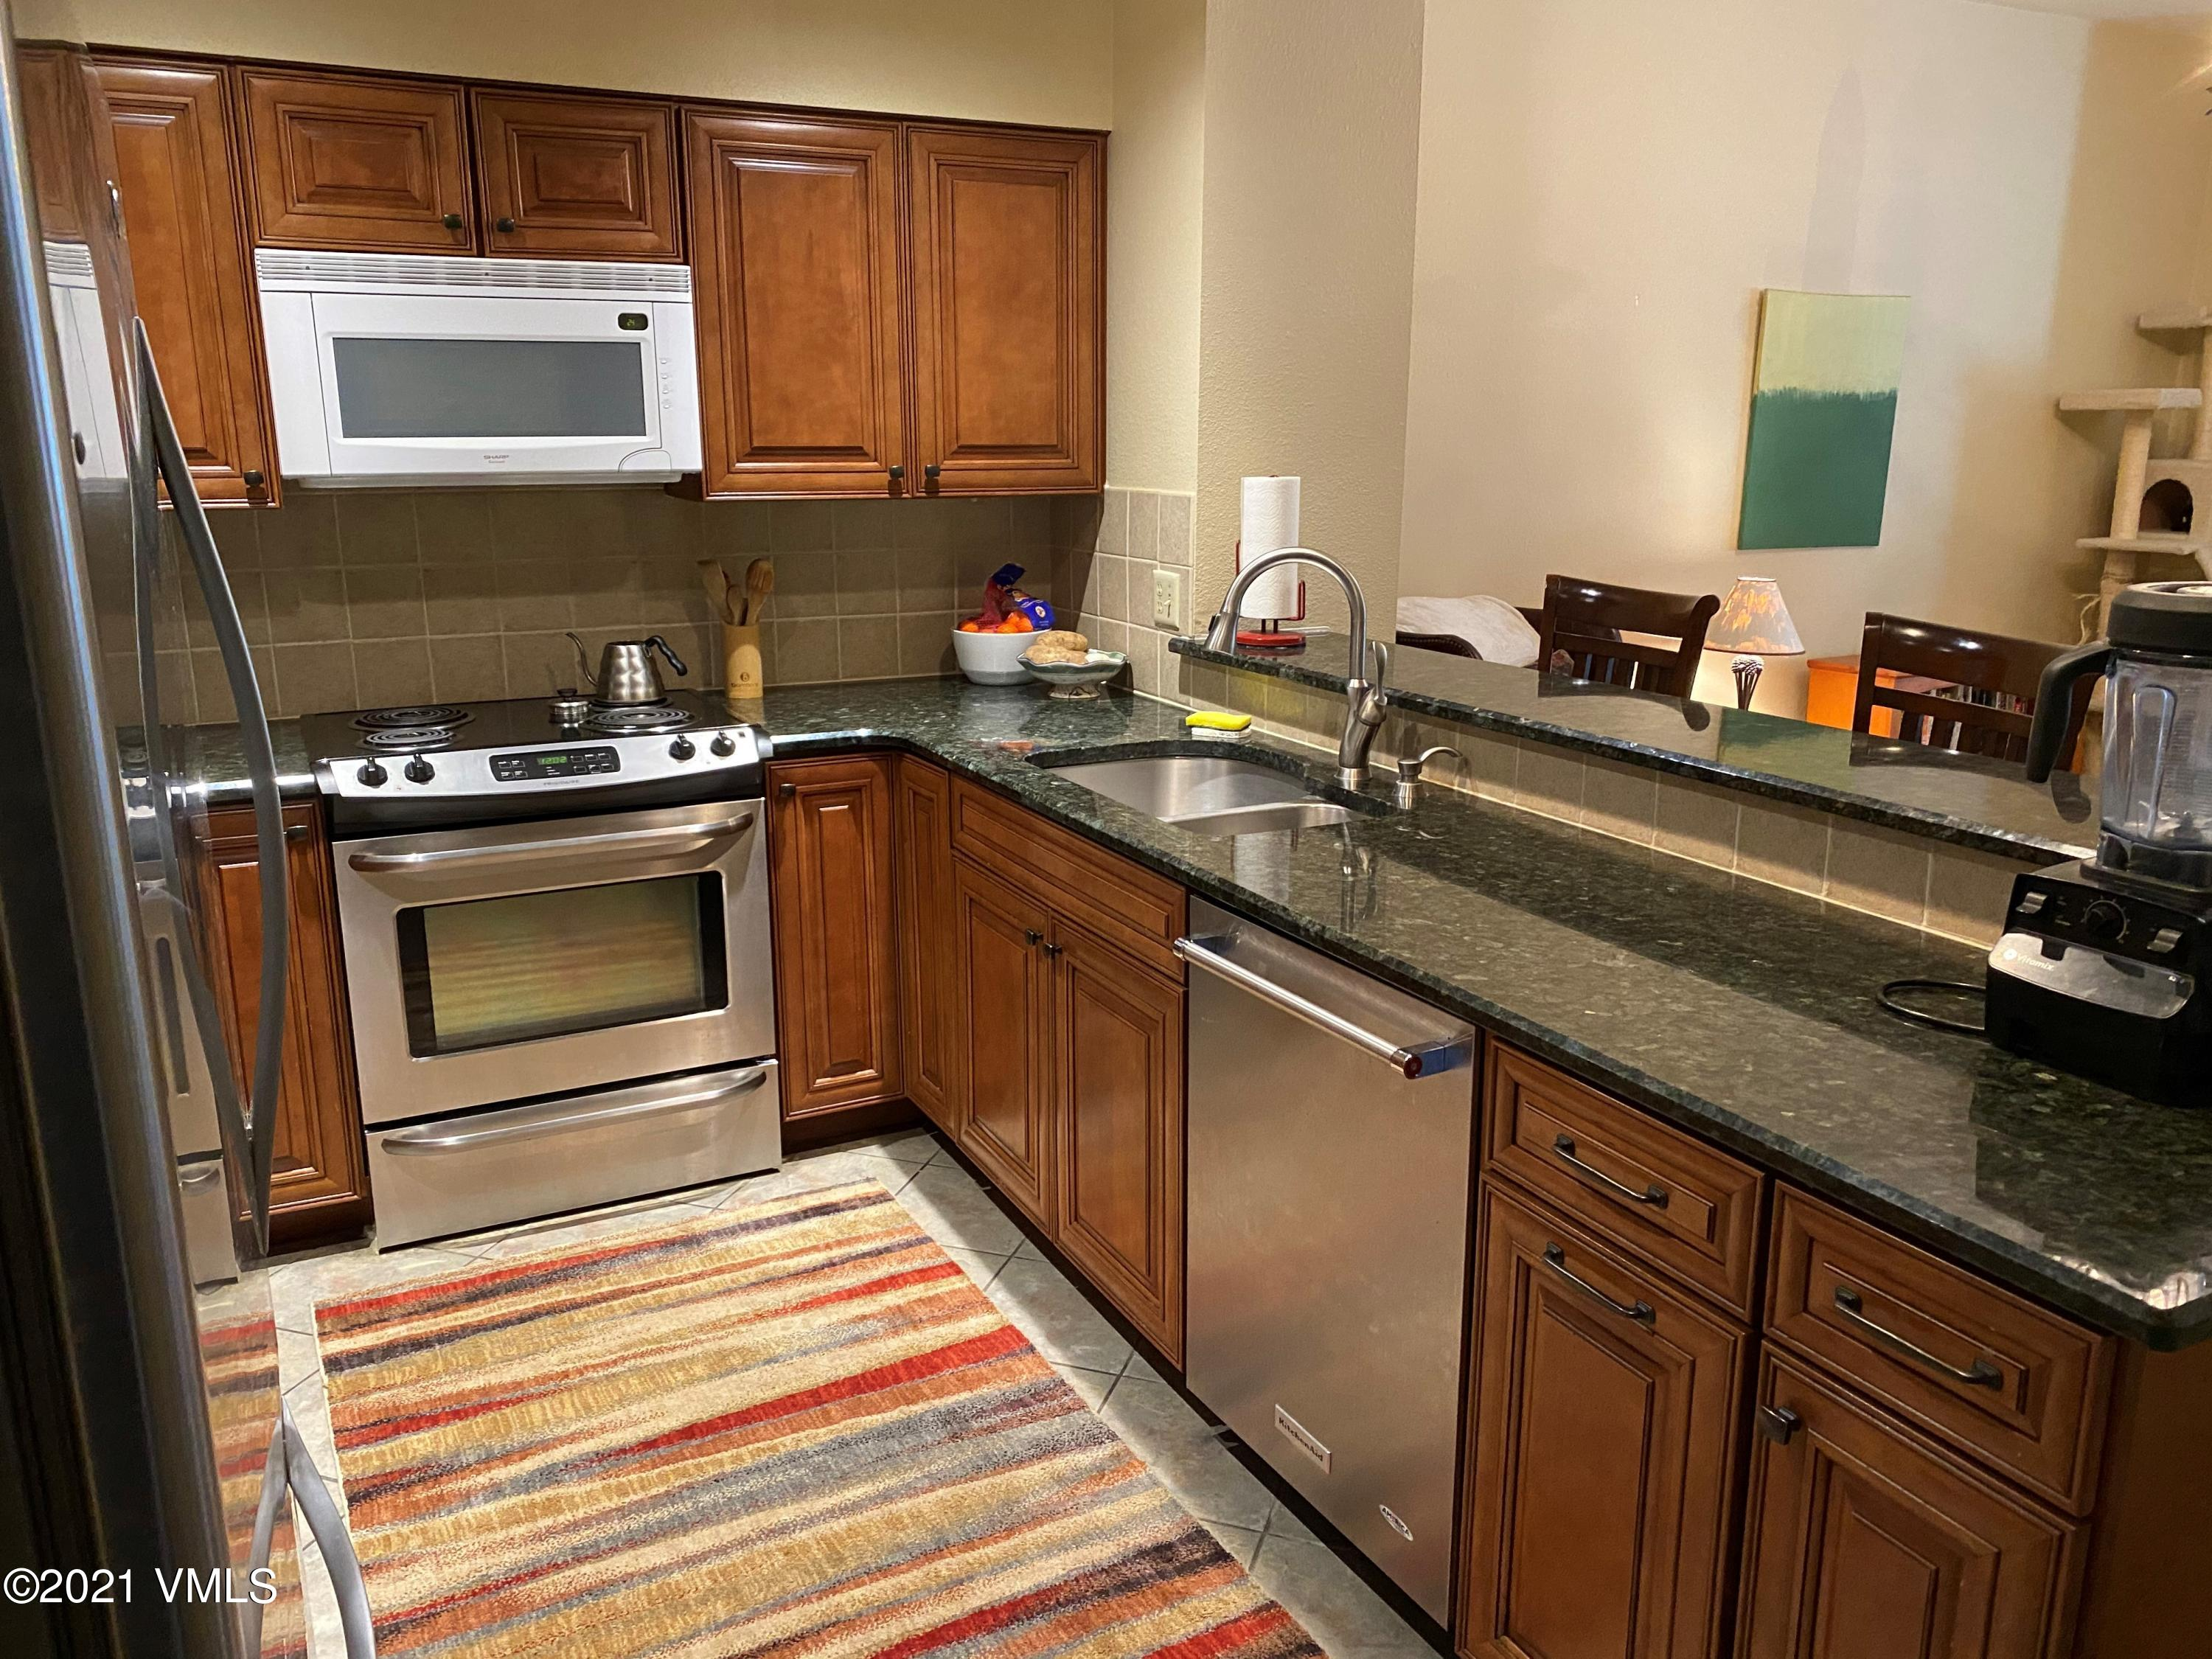 Listen to the sounds of the Creek from your Master bedroom and feel like you are in the forest whilst in the living area. Two bedroom plus Den - 2 Bath Condo, located in the heart of Eagle Vail. Covered parking, Pool and Hot tubs overlooking the River. Low HOA dues and great location, make this a perfect mountain getaway year round.